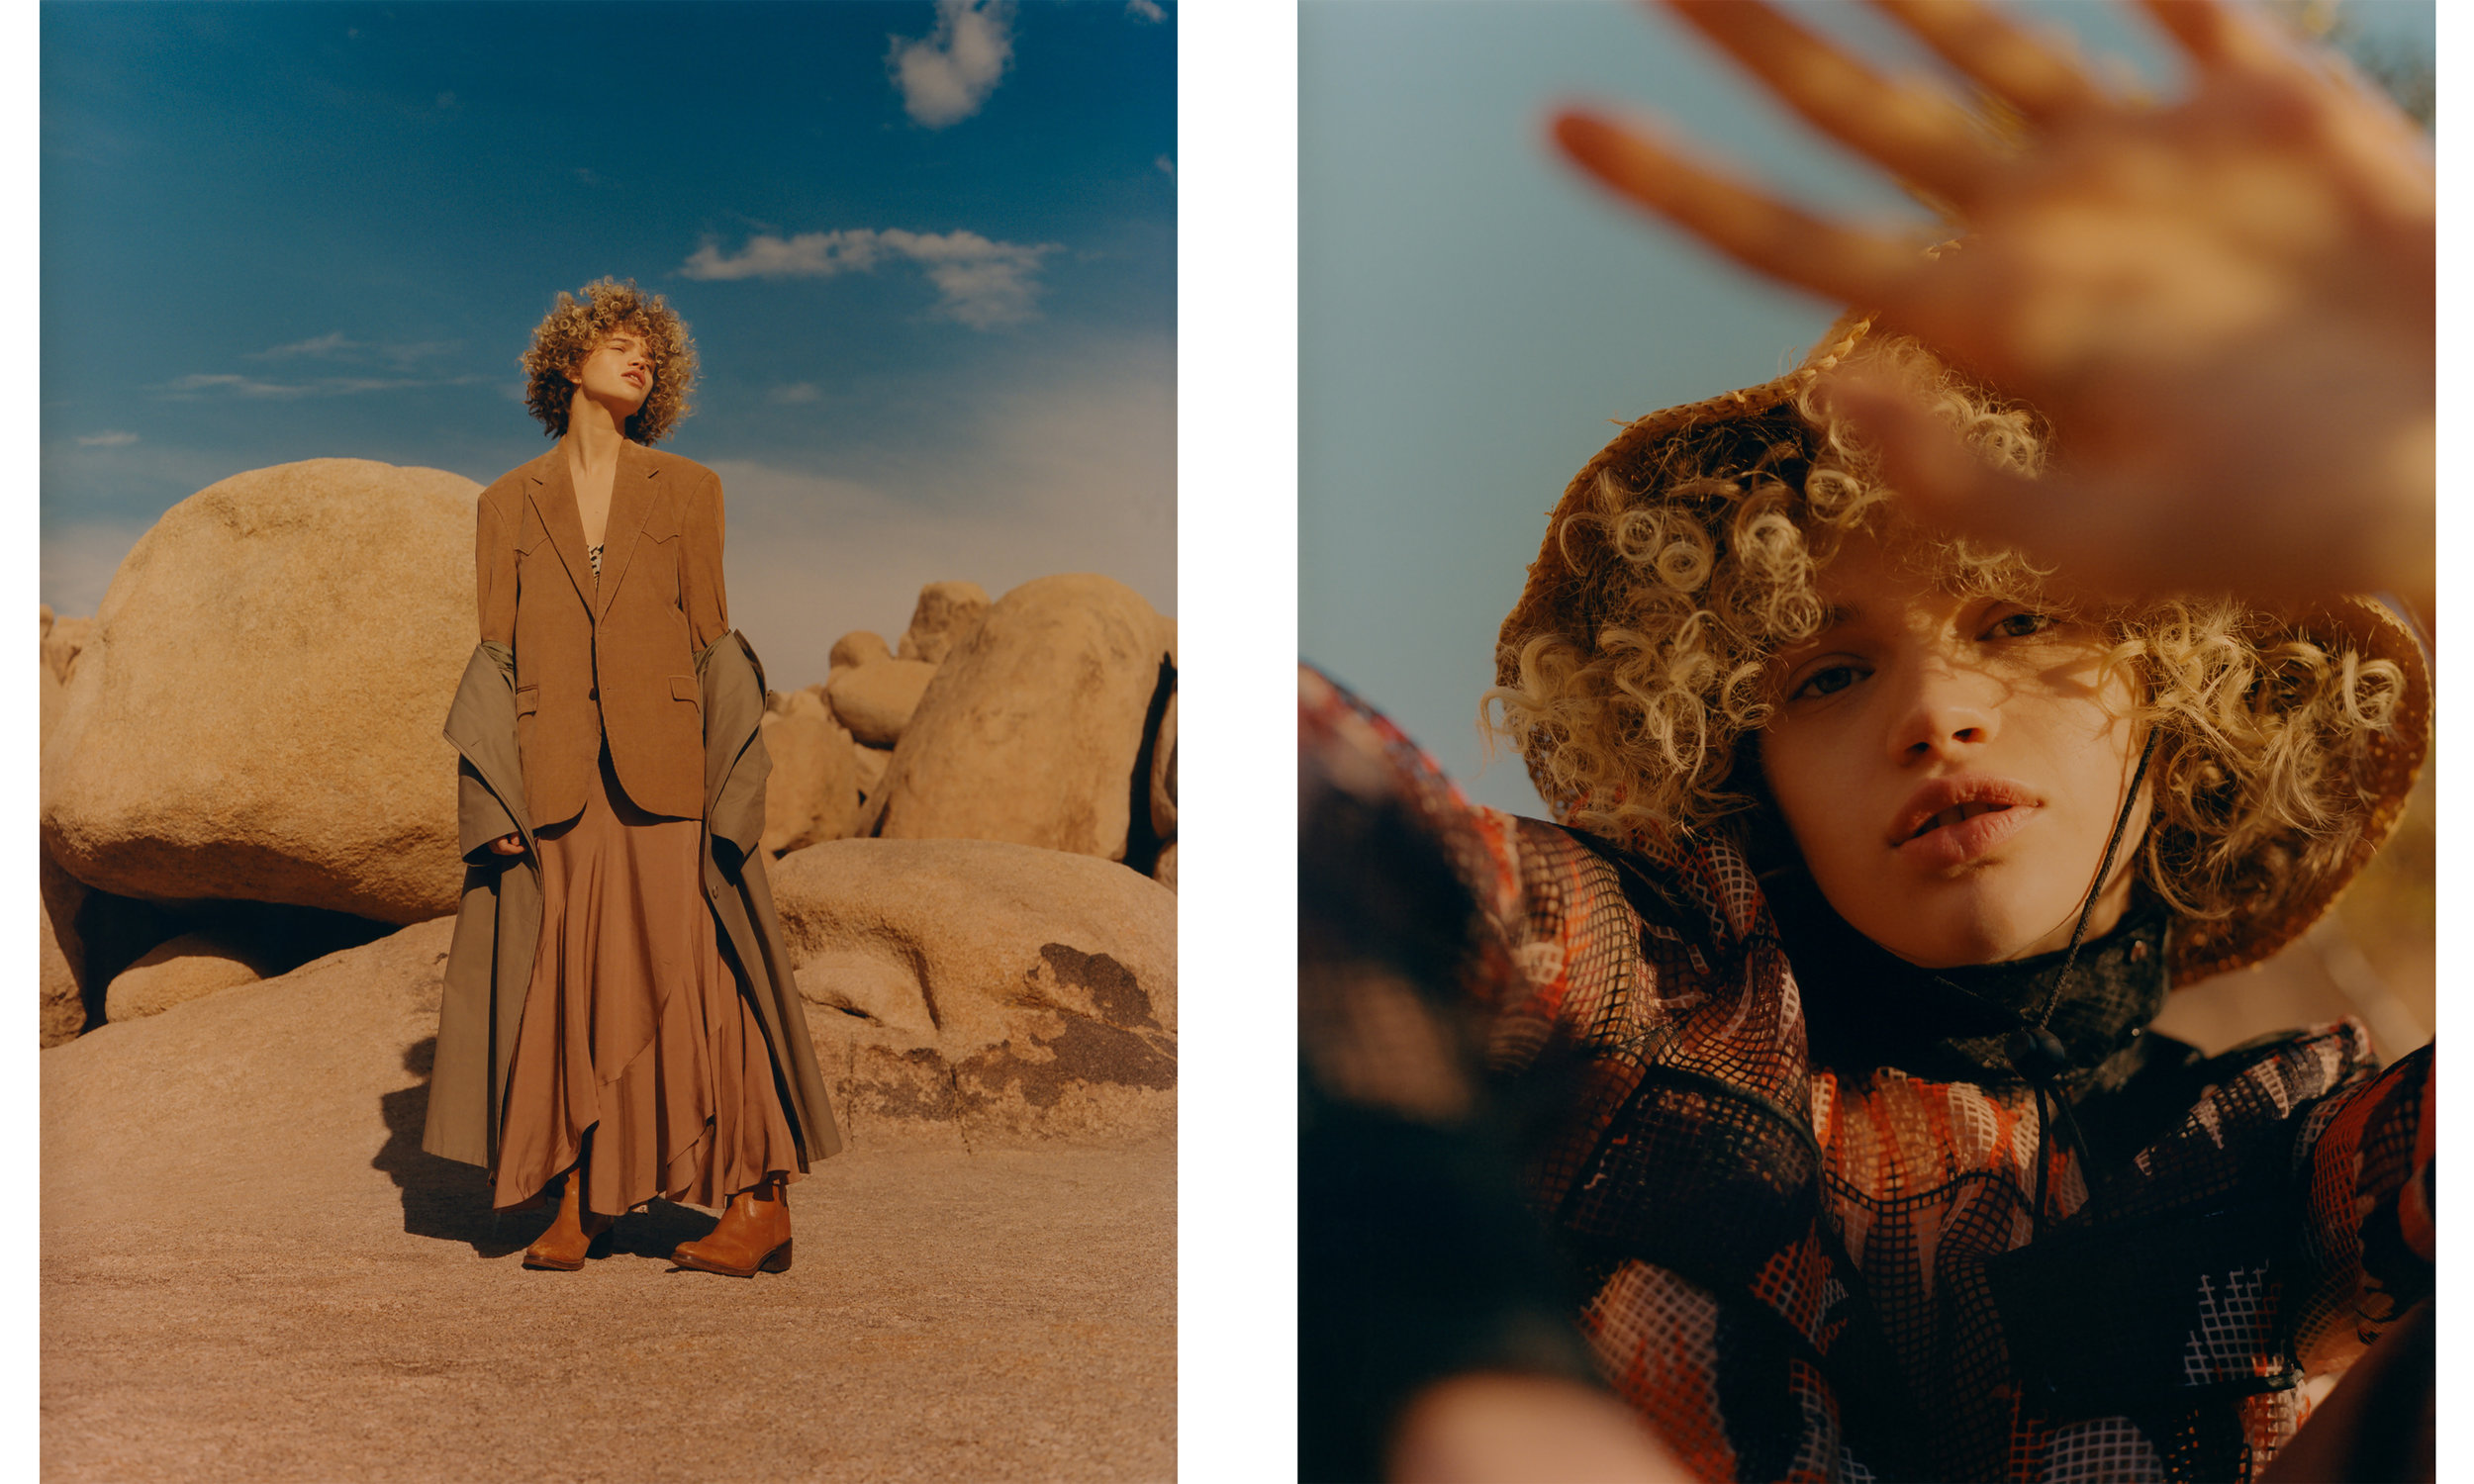 RORY_PAYNE_STELLA_LUCIA_VOGUE_RUSSIA_0001.jpg